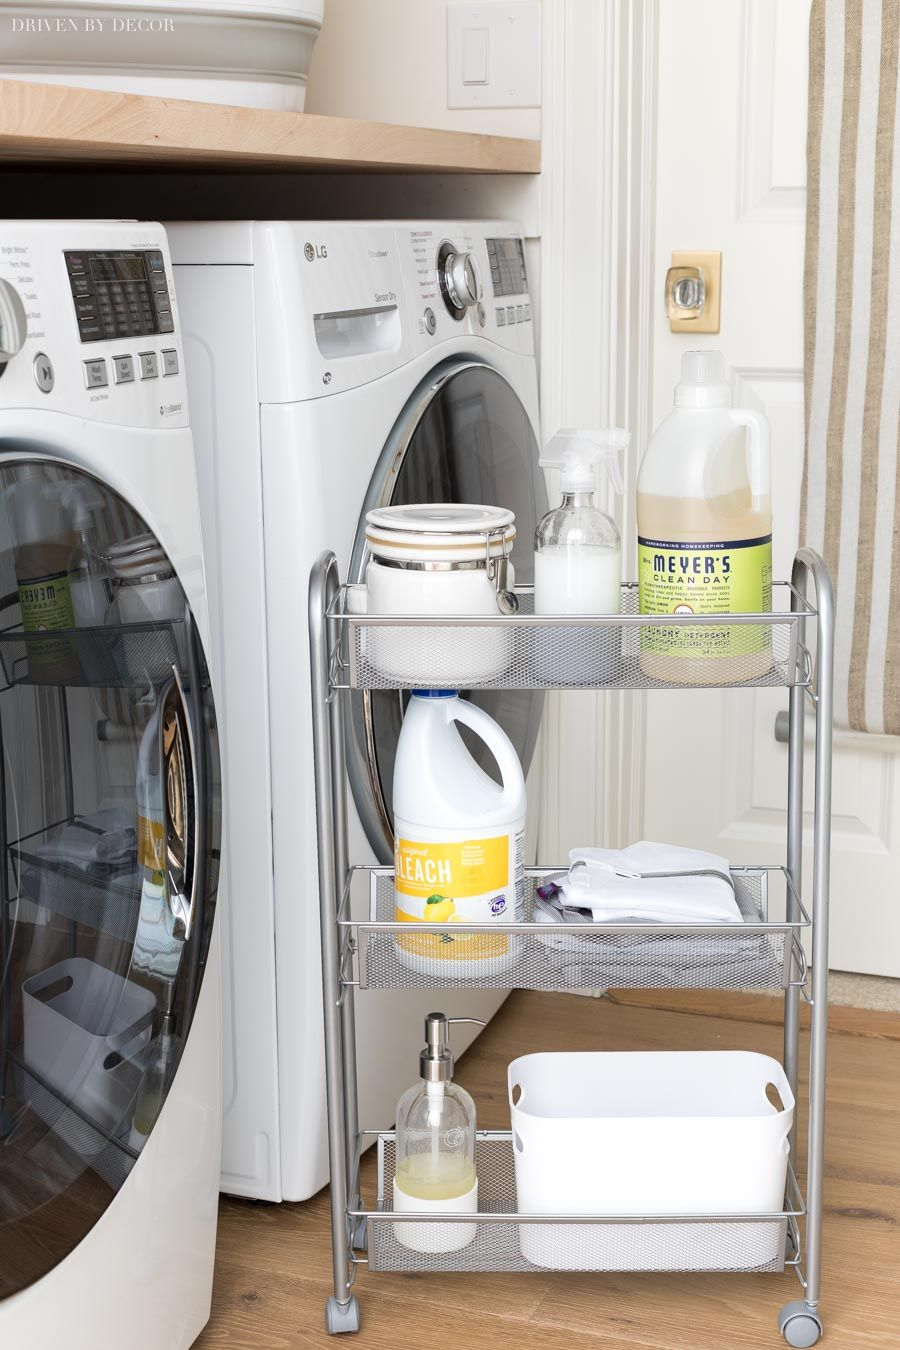 My Six Best Laundry Room Storage Ideas Driven By Decor Laundry